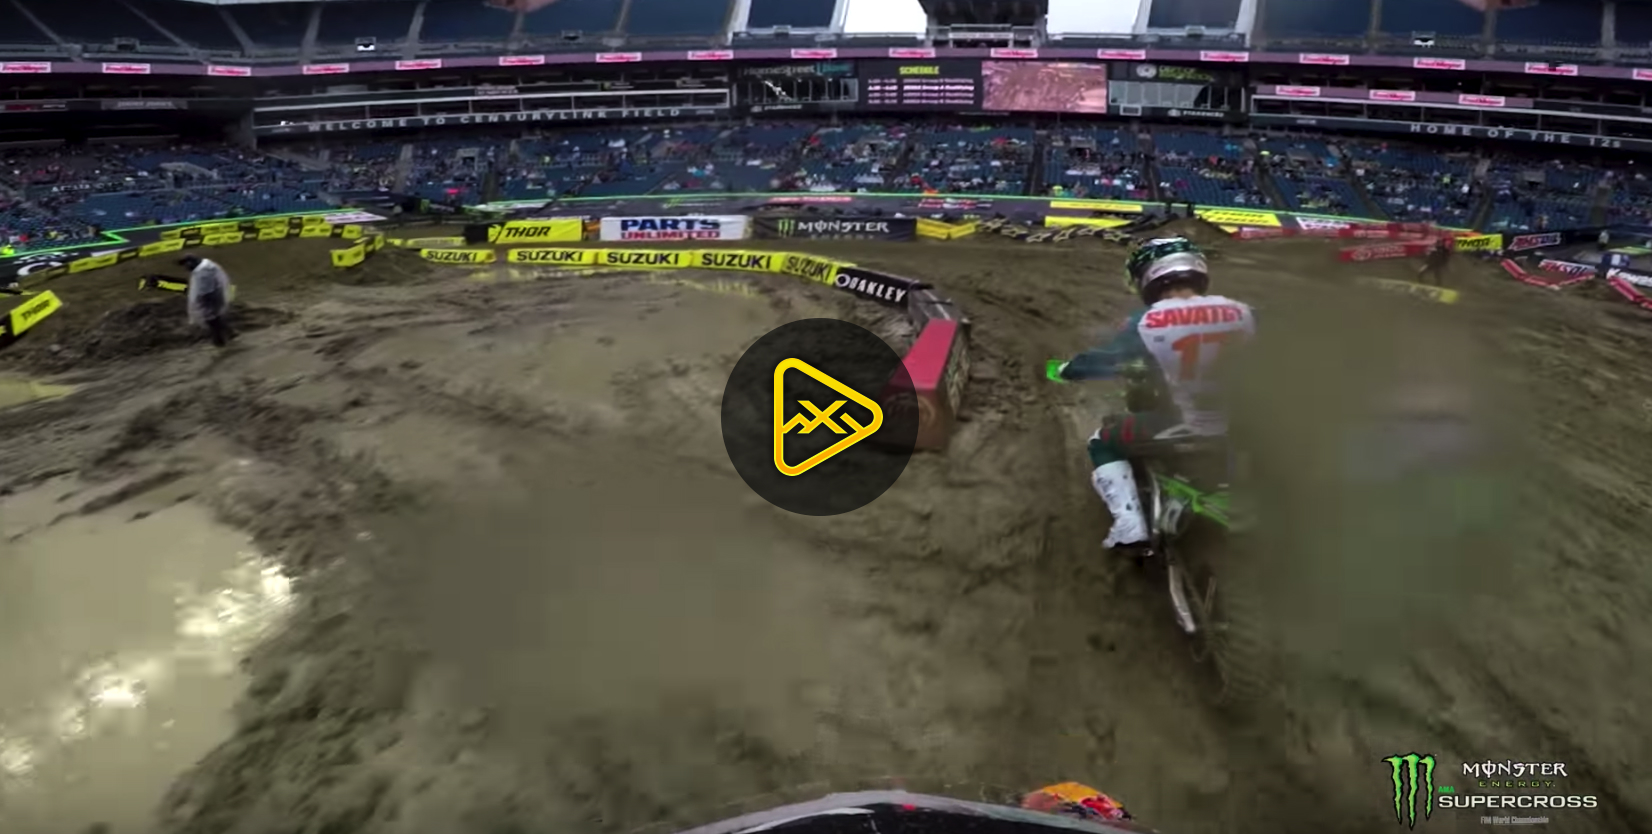 GoPro: Shane McElrath in the Mud of Seattle SX